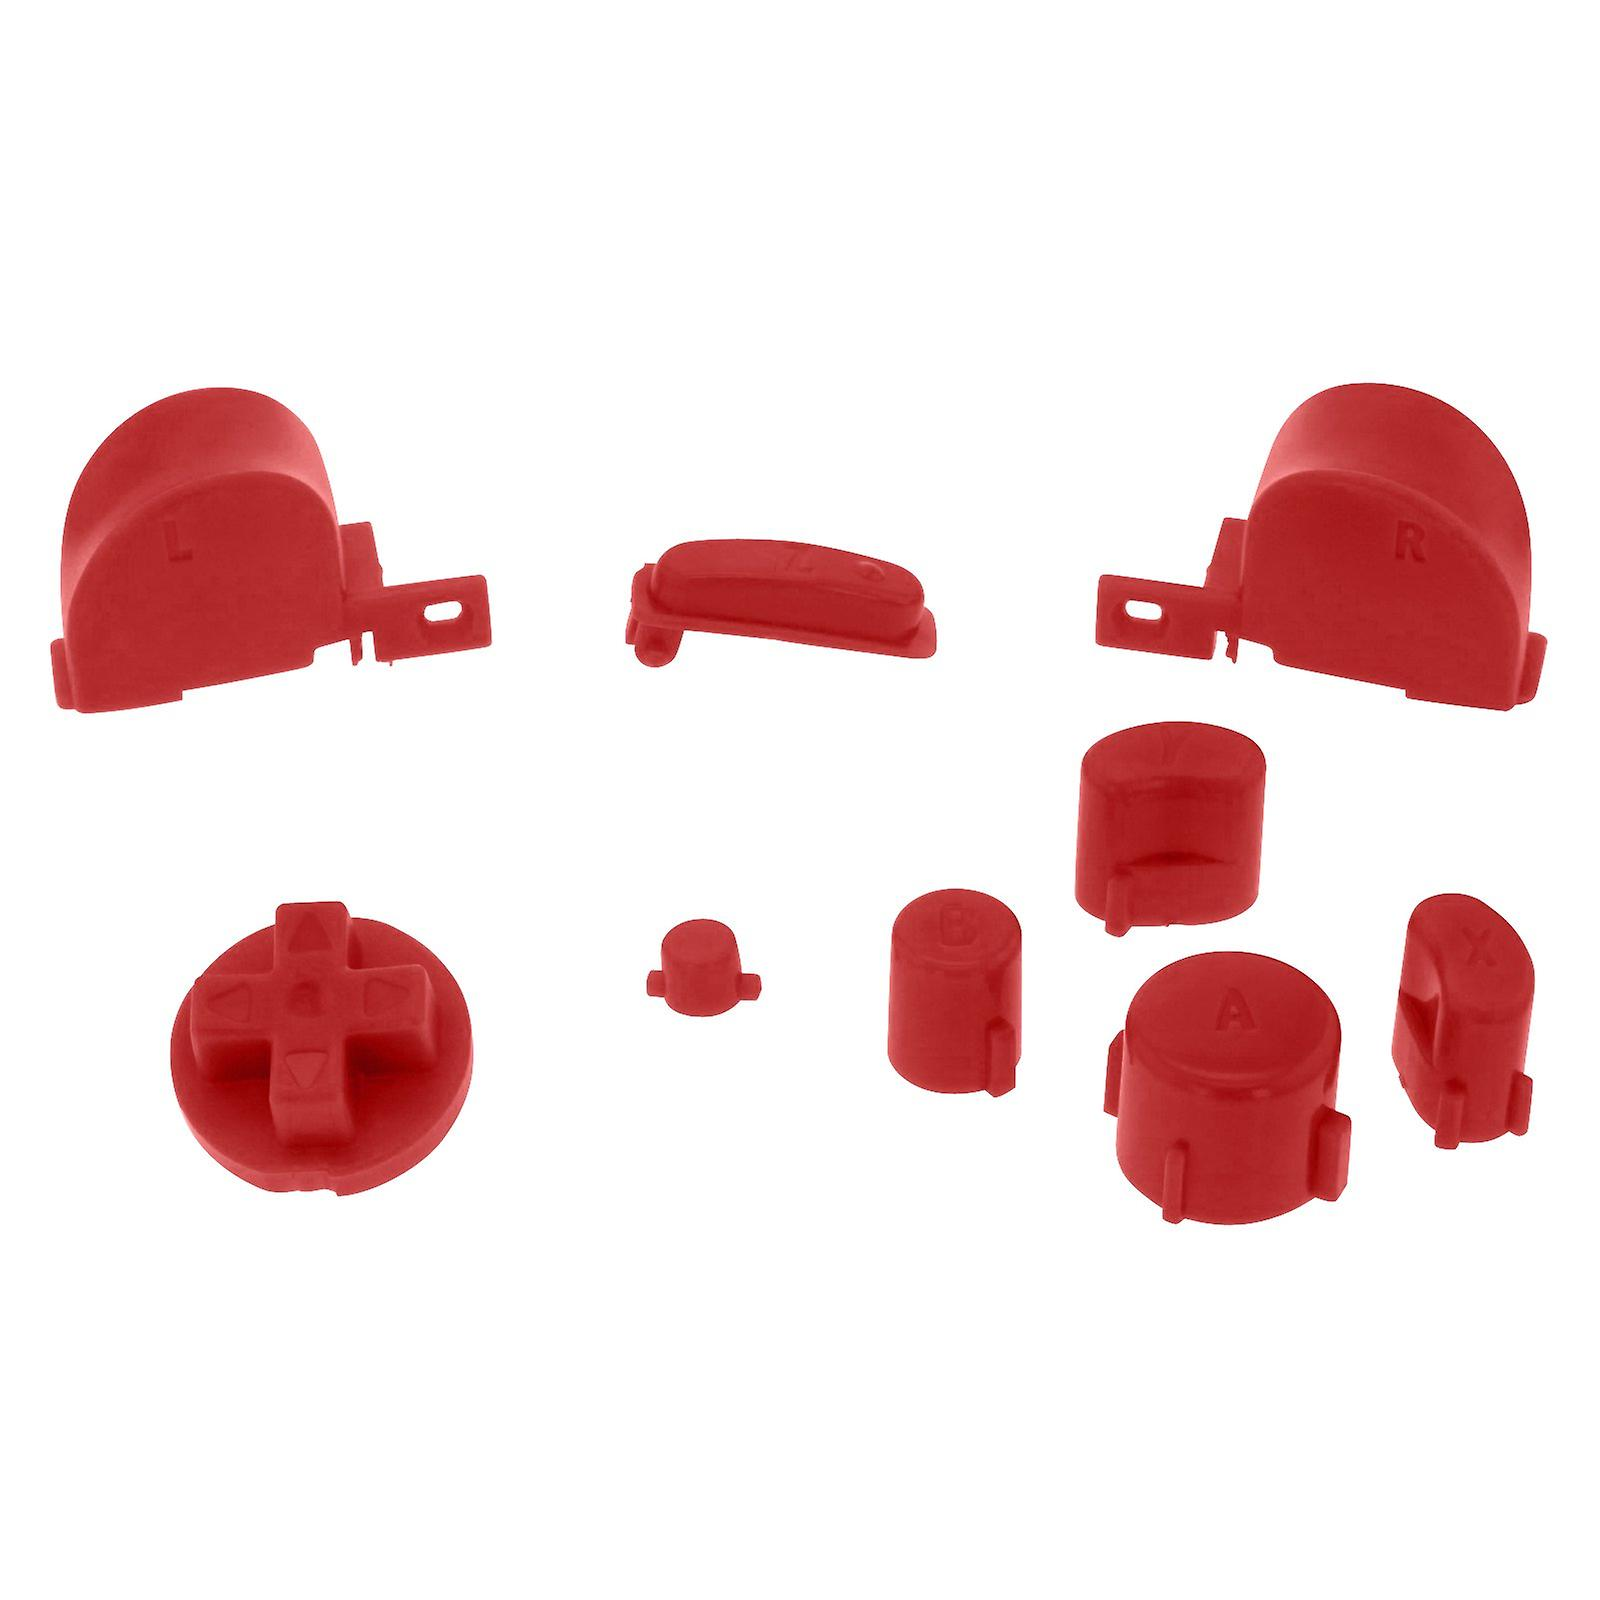 Replacement button set mod kit for nintendo gamecube controllers - red